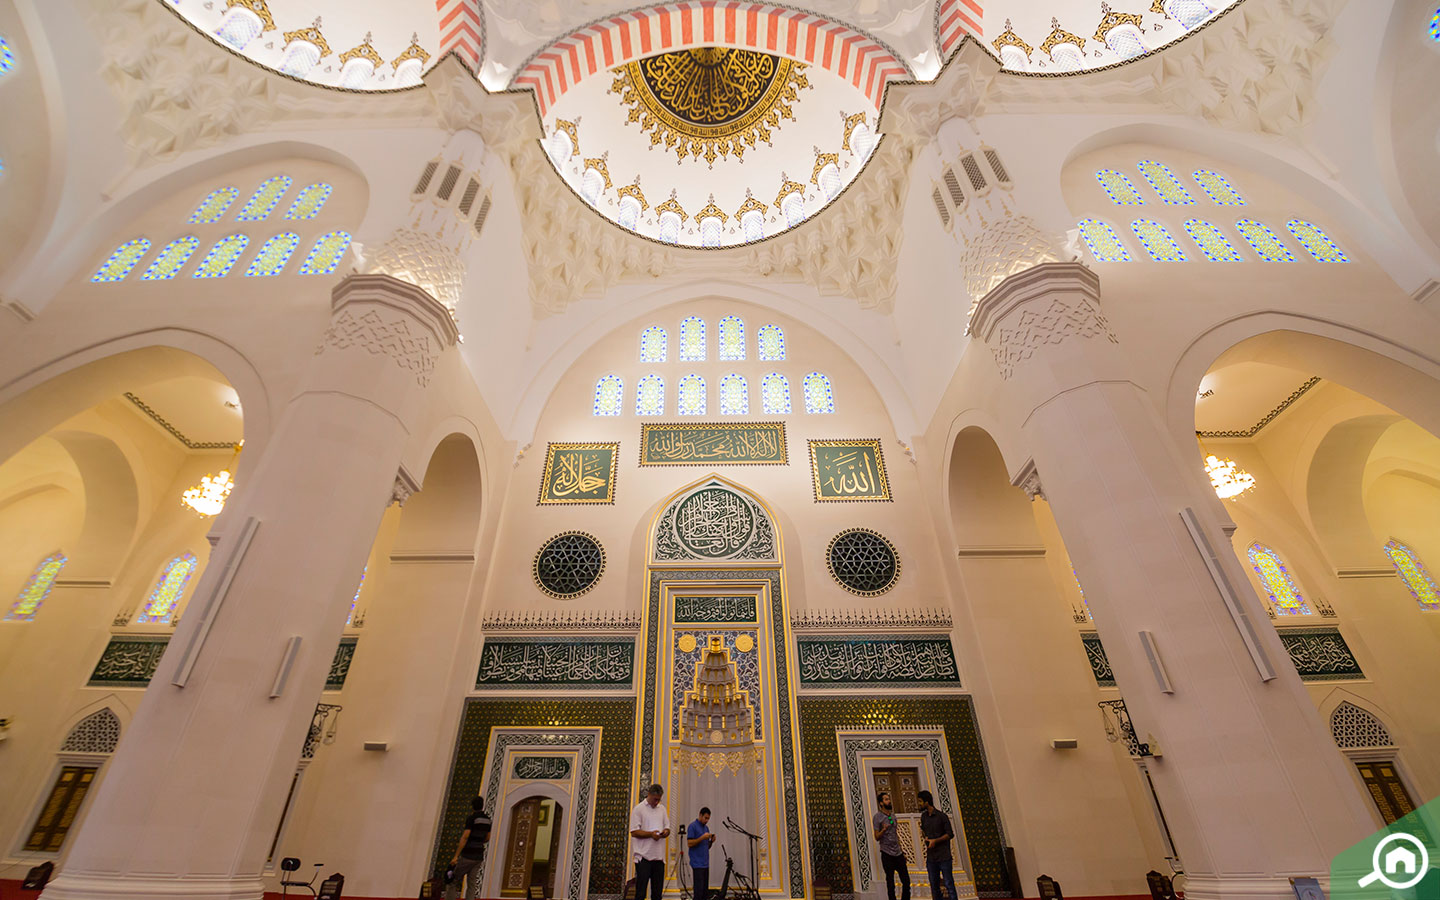 Mihrab of the new famous mosque in Sharjah